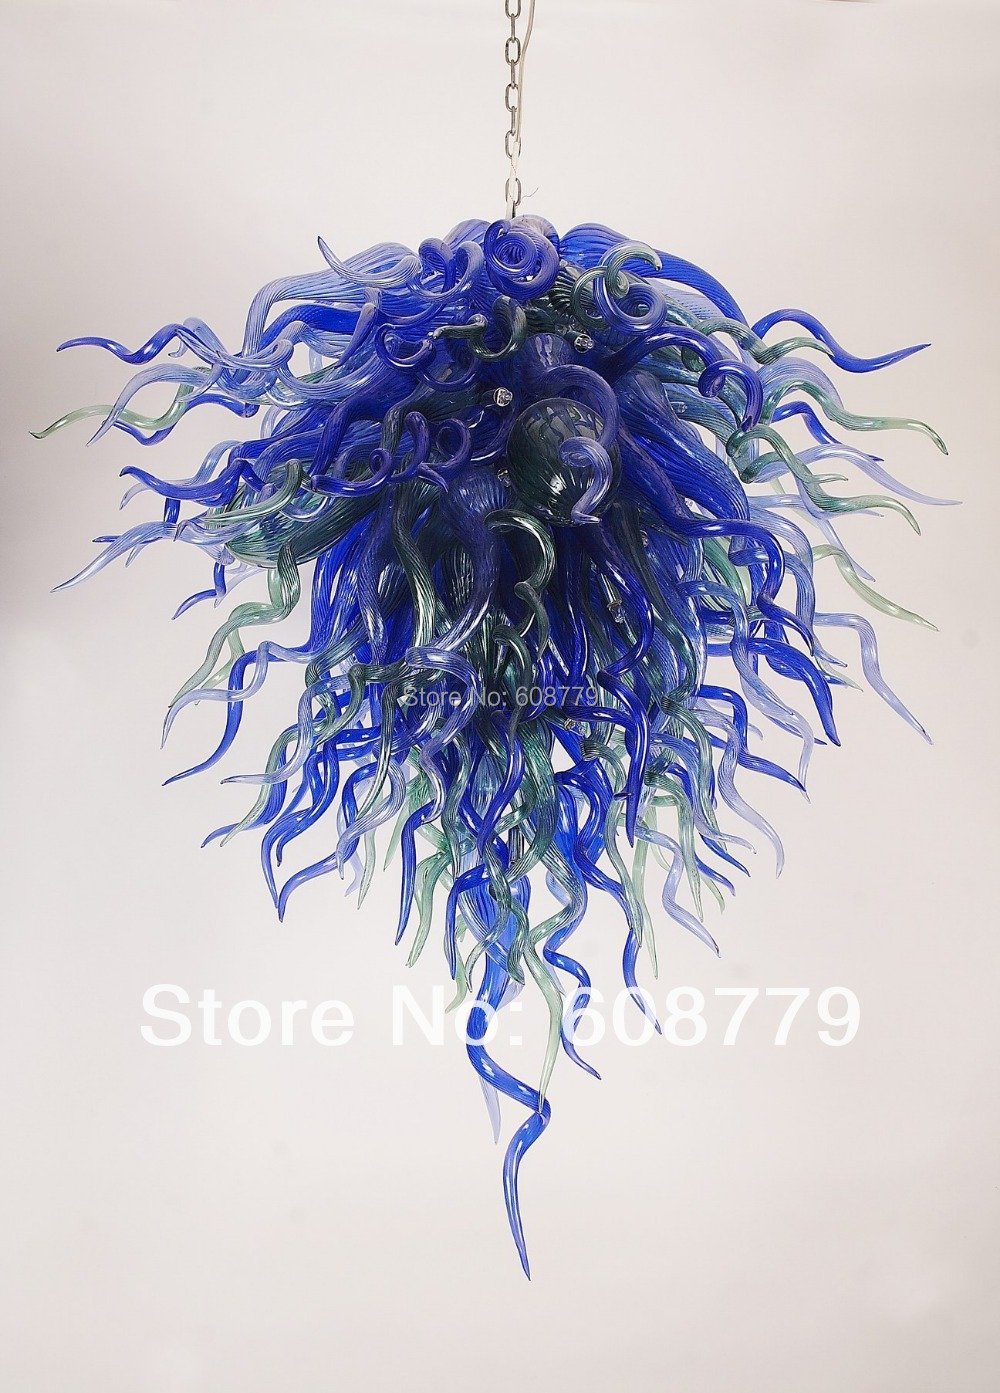 Hot Sale Majestic Lighting 100% Handmade Glass Chandelier In Blue